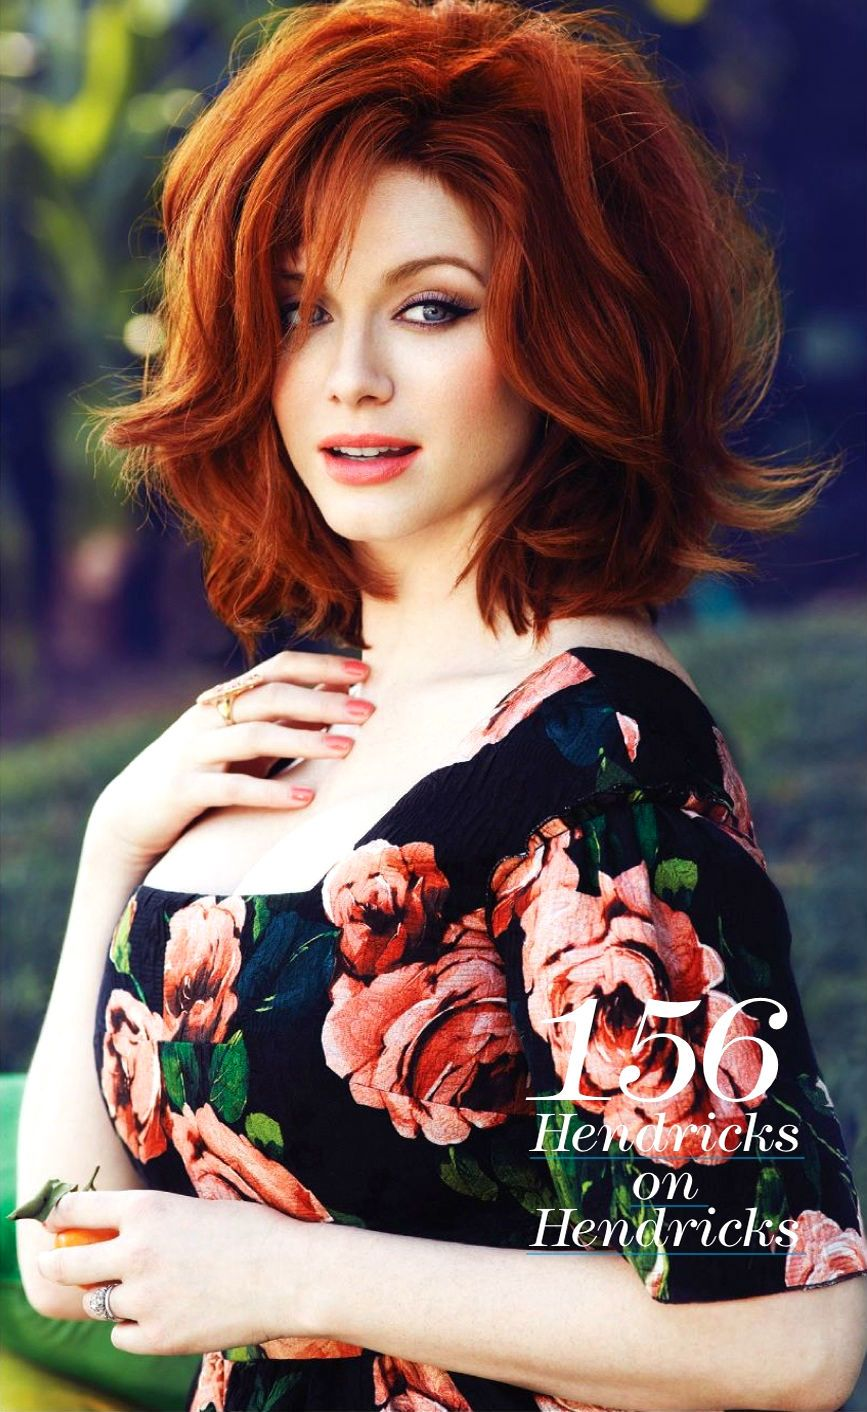 Oh no they didnut queen christina hendricks looking springy and